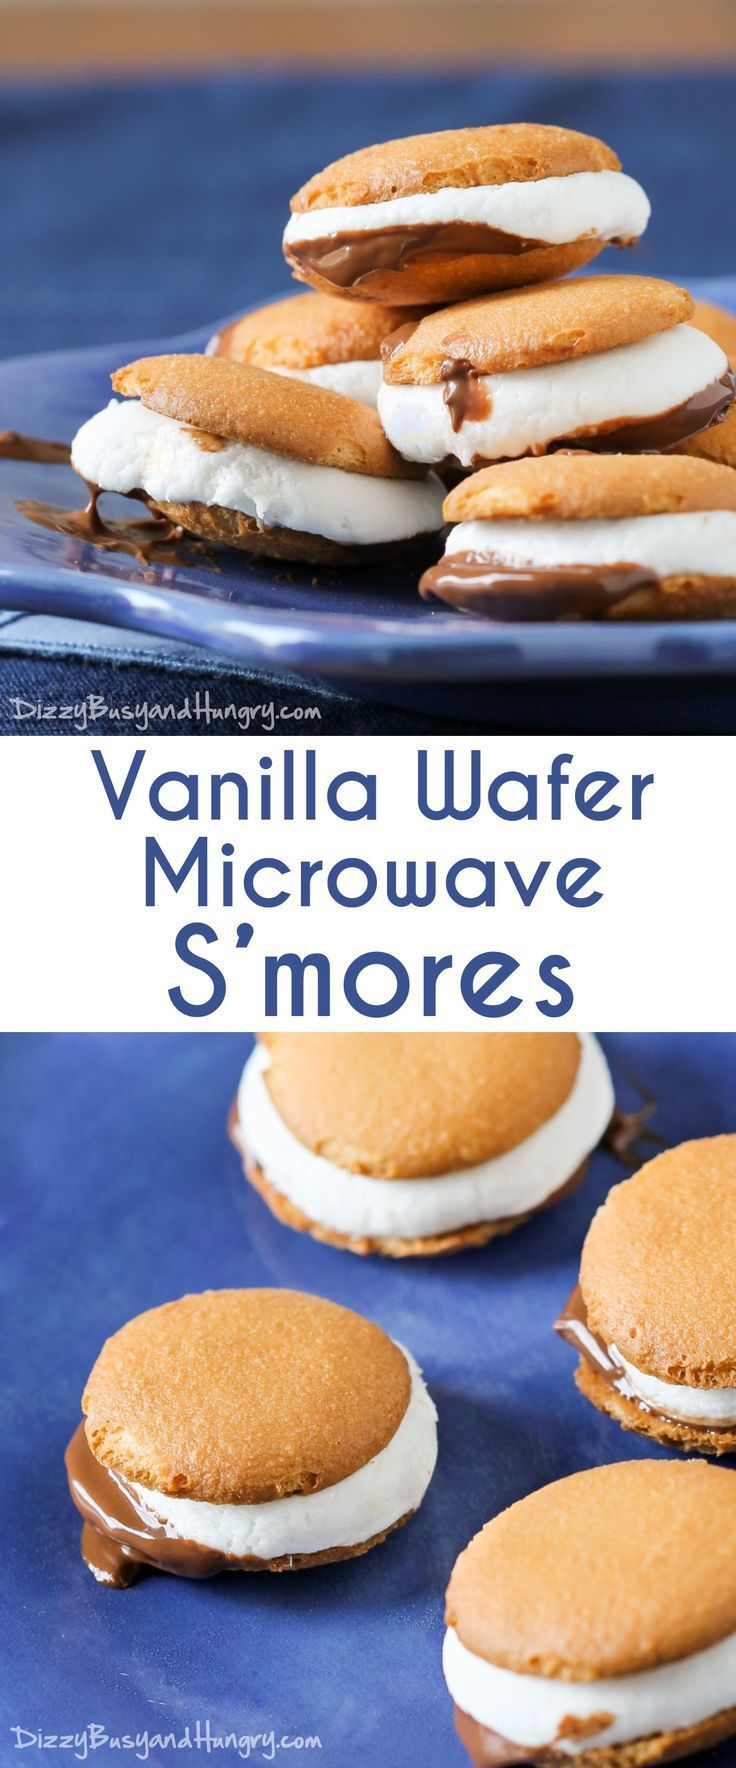 Vanilla Wafer Microwave S'mores | http://DizzyBusyandHungry.com - Cute, two-bite s'mores you can make in your kitchen in less than 5 minutes!